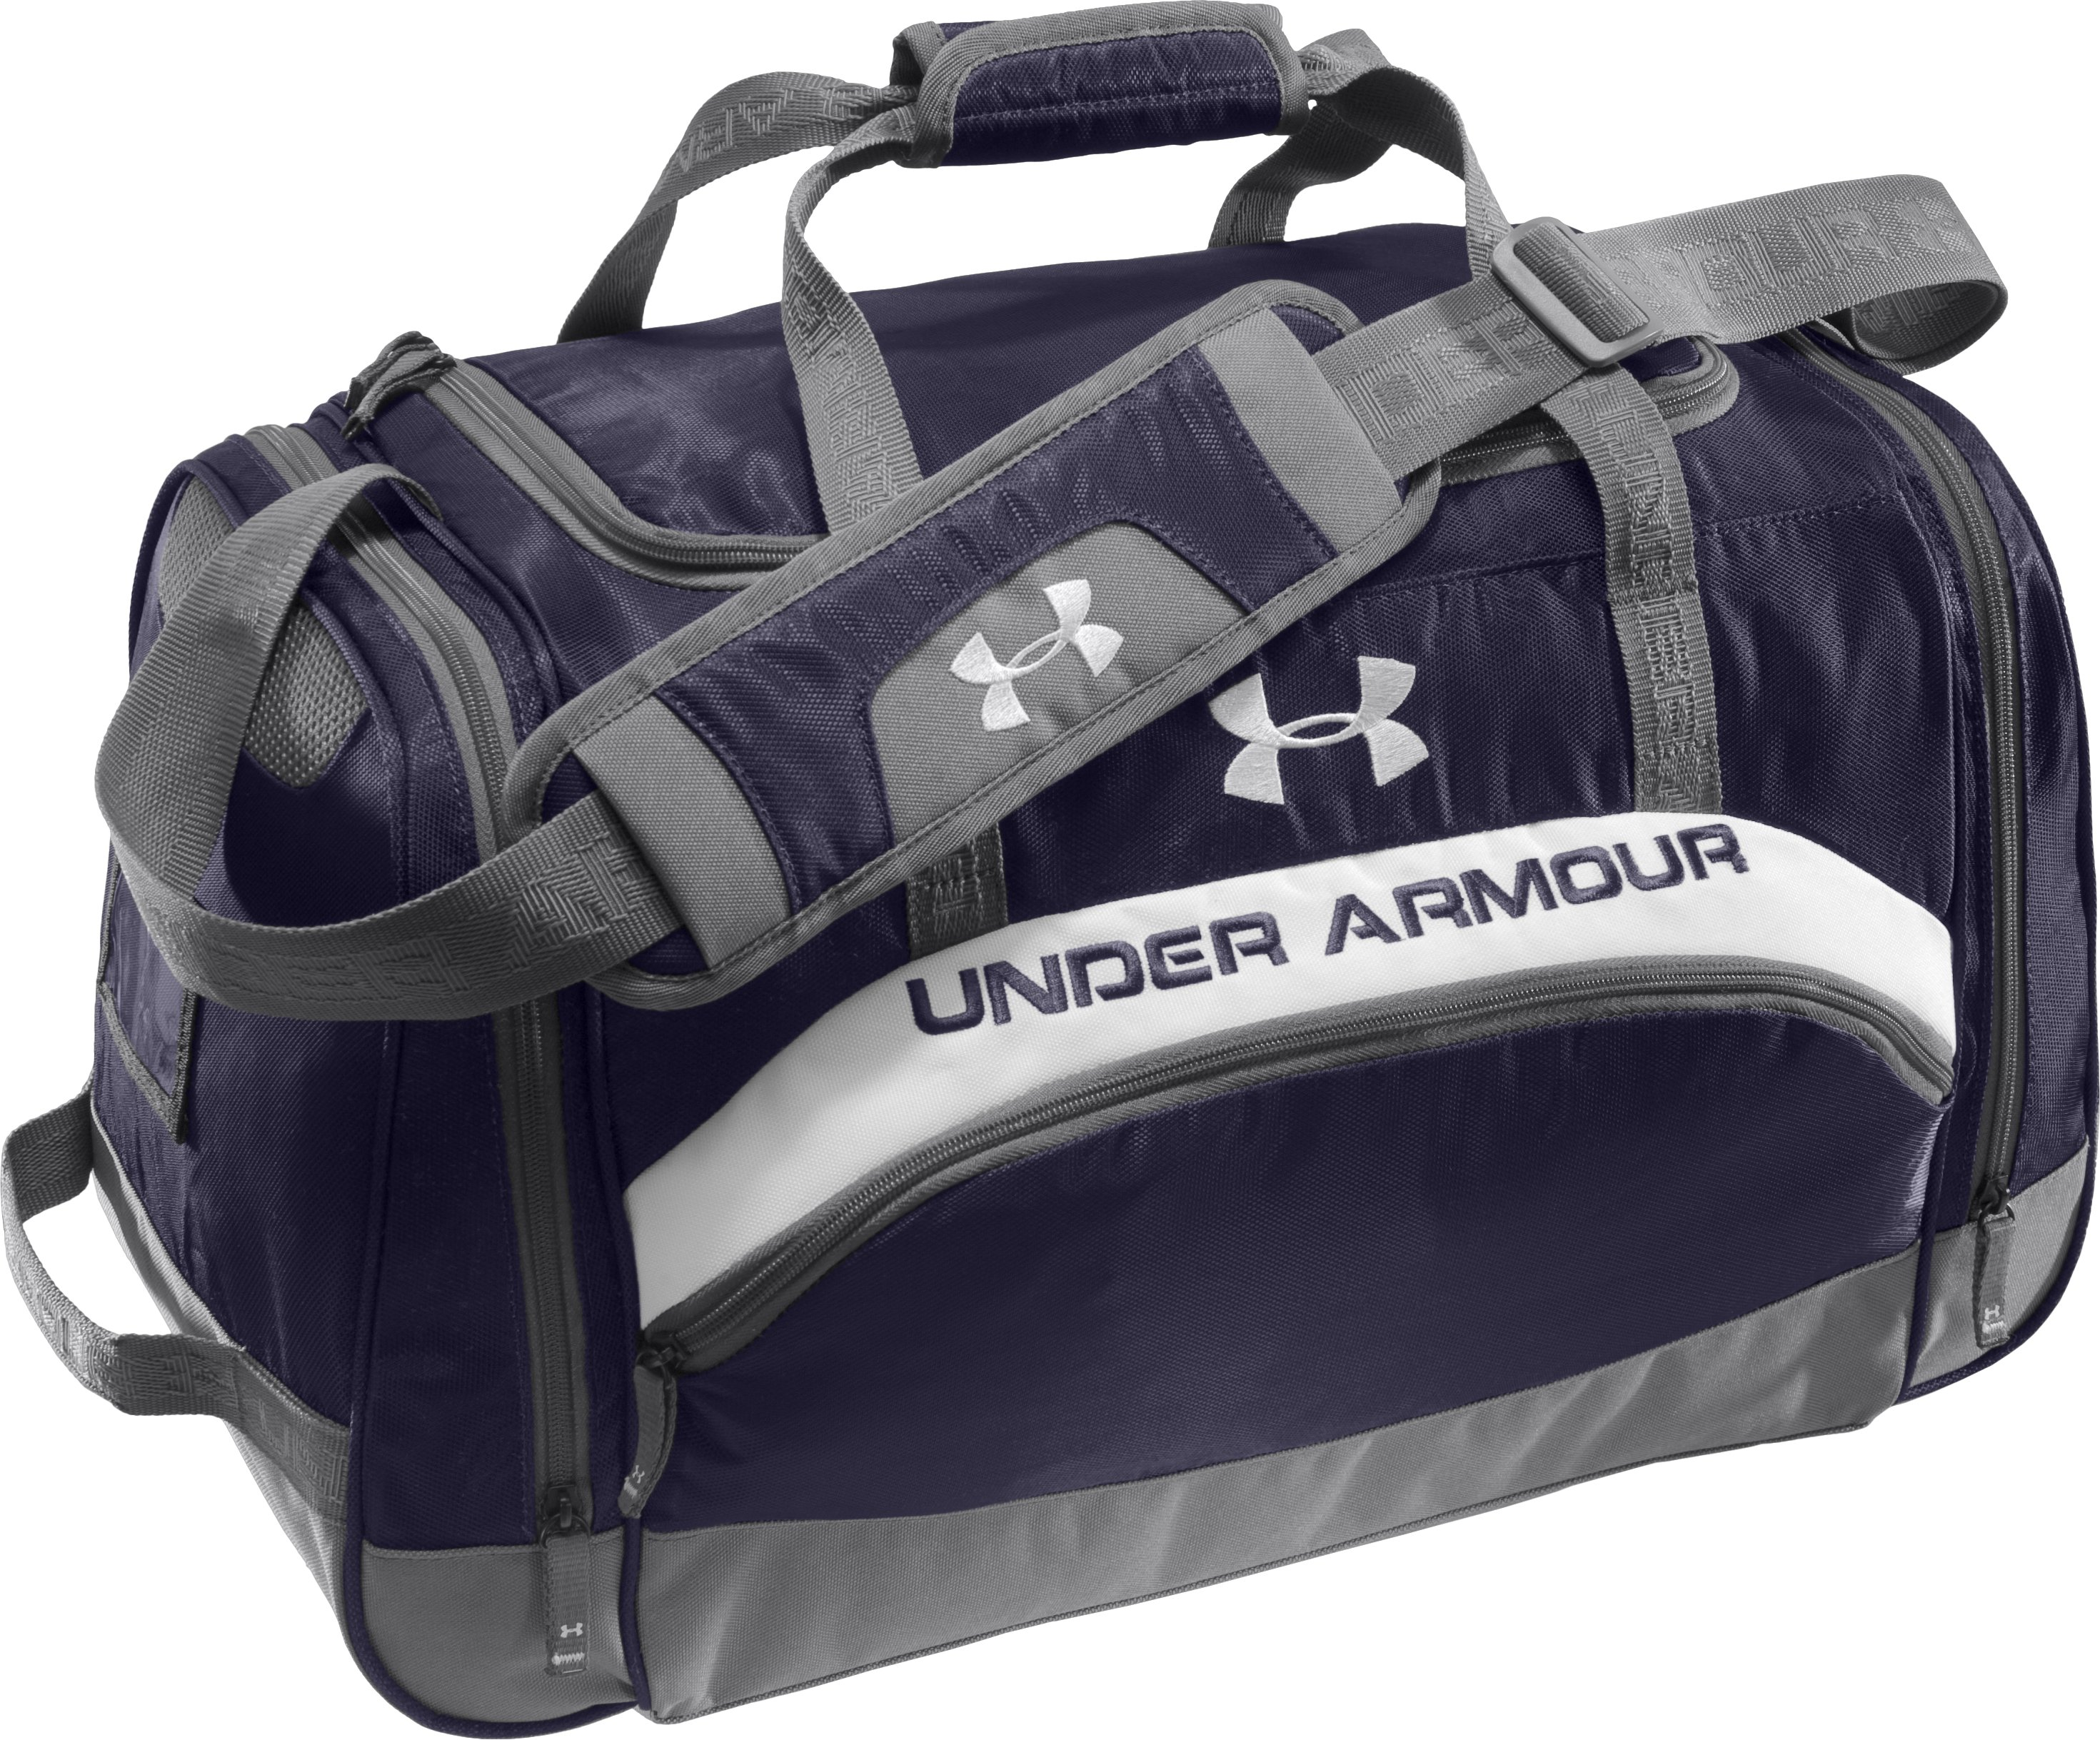 PTH® Victory Small Team Duffel Bag, Midnight Navy, undefined